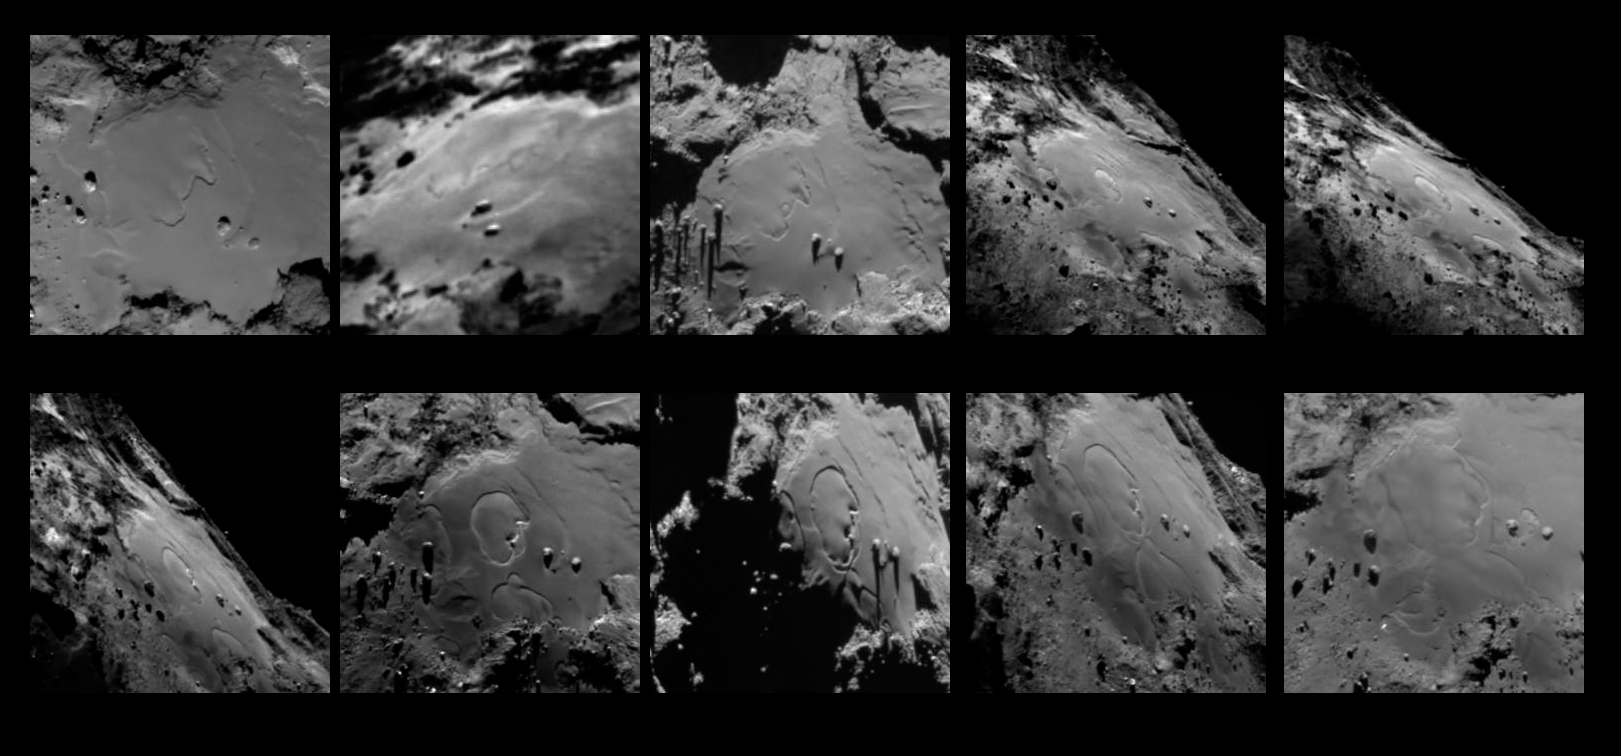 This sequence of ten images showing changes in the Imhotep region on Comet 67P/Chruymov-Gerasimenko were taken with the OSIRIS narrow-angle camera on Rosetta between May 24 and July 11, 2015. Credit: ESA/Rosetta/MPS for OSIRIS Team MPS/UPD/LAM/IAA/SSO/INTA/UPM/DASP/IDA